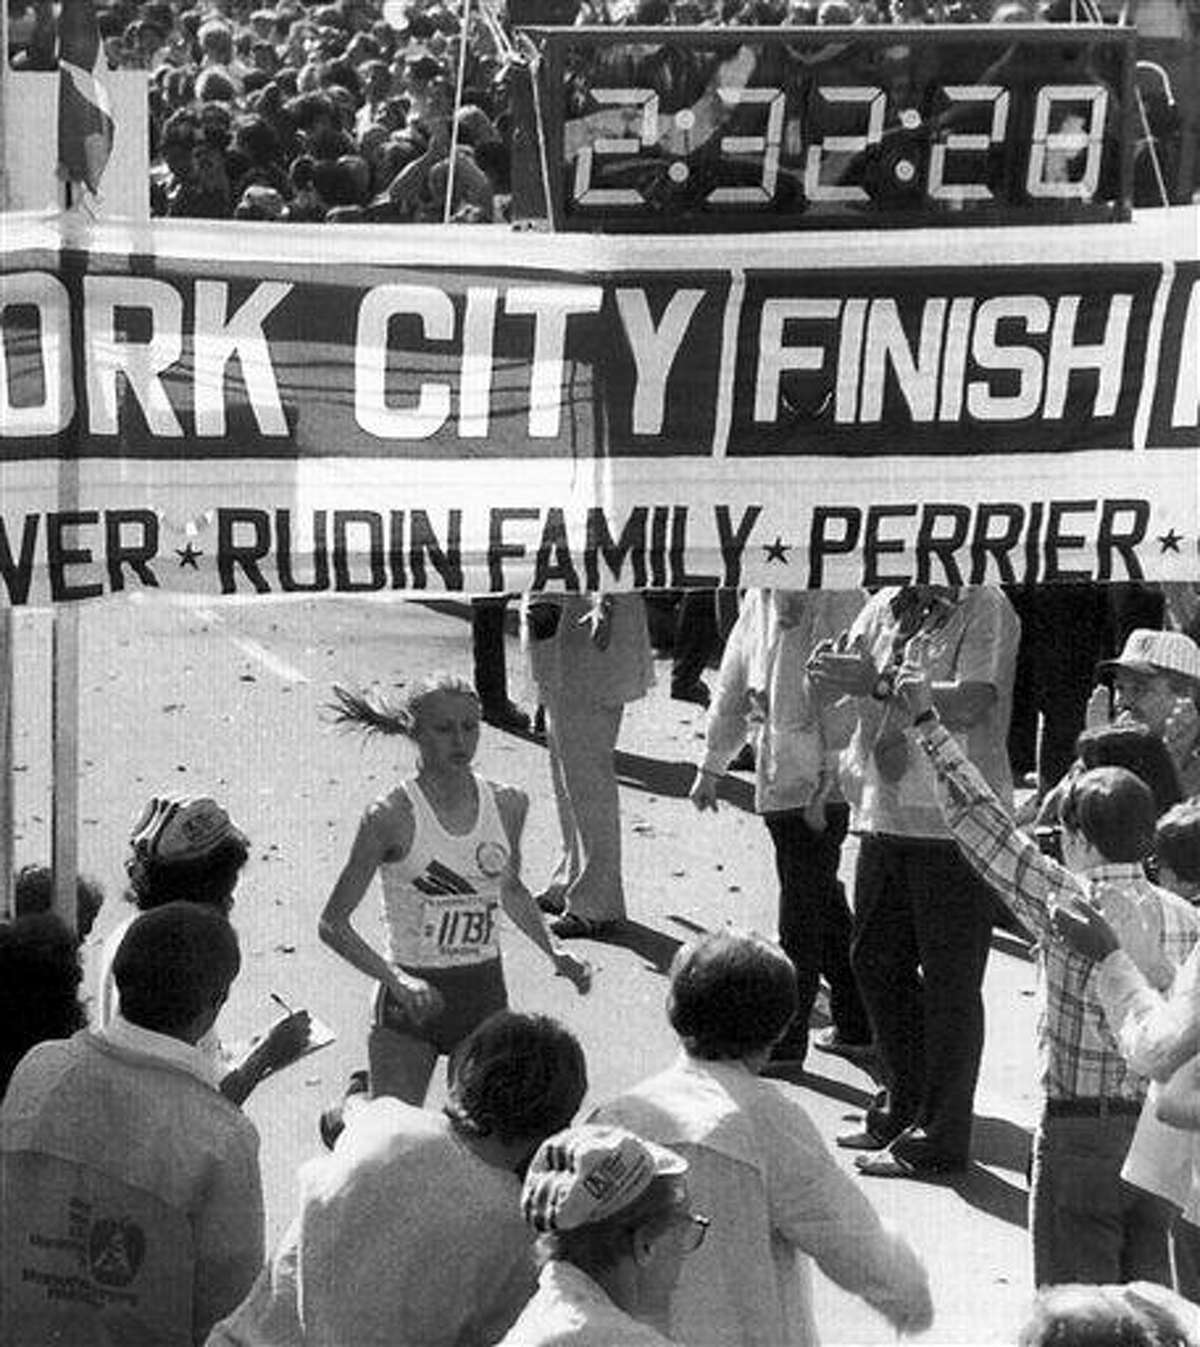 FILE - This Oct. 22, 1978, file photo shows Grete Waitz crossing the finish line to win her first New York City Marathon, in New York. Waitz, the Norwegian runner who won nine New York City Marathons and the silver medal at the 1984 Los Angeles Olympics, died in Oslo, Norway Tuesday, April 19, 2011 after a six-year battle with cancer. She was 57. (AP Photo/File)